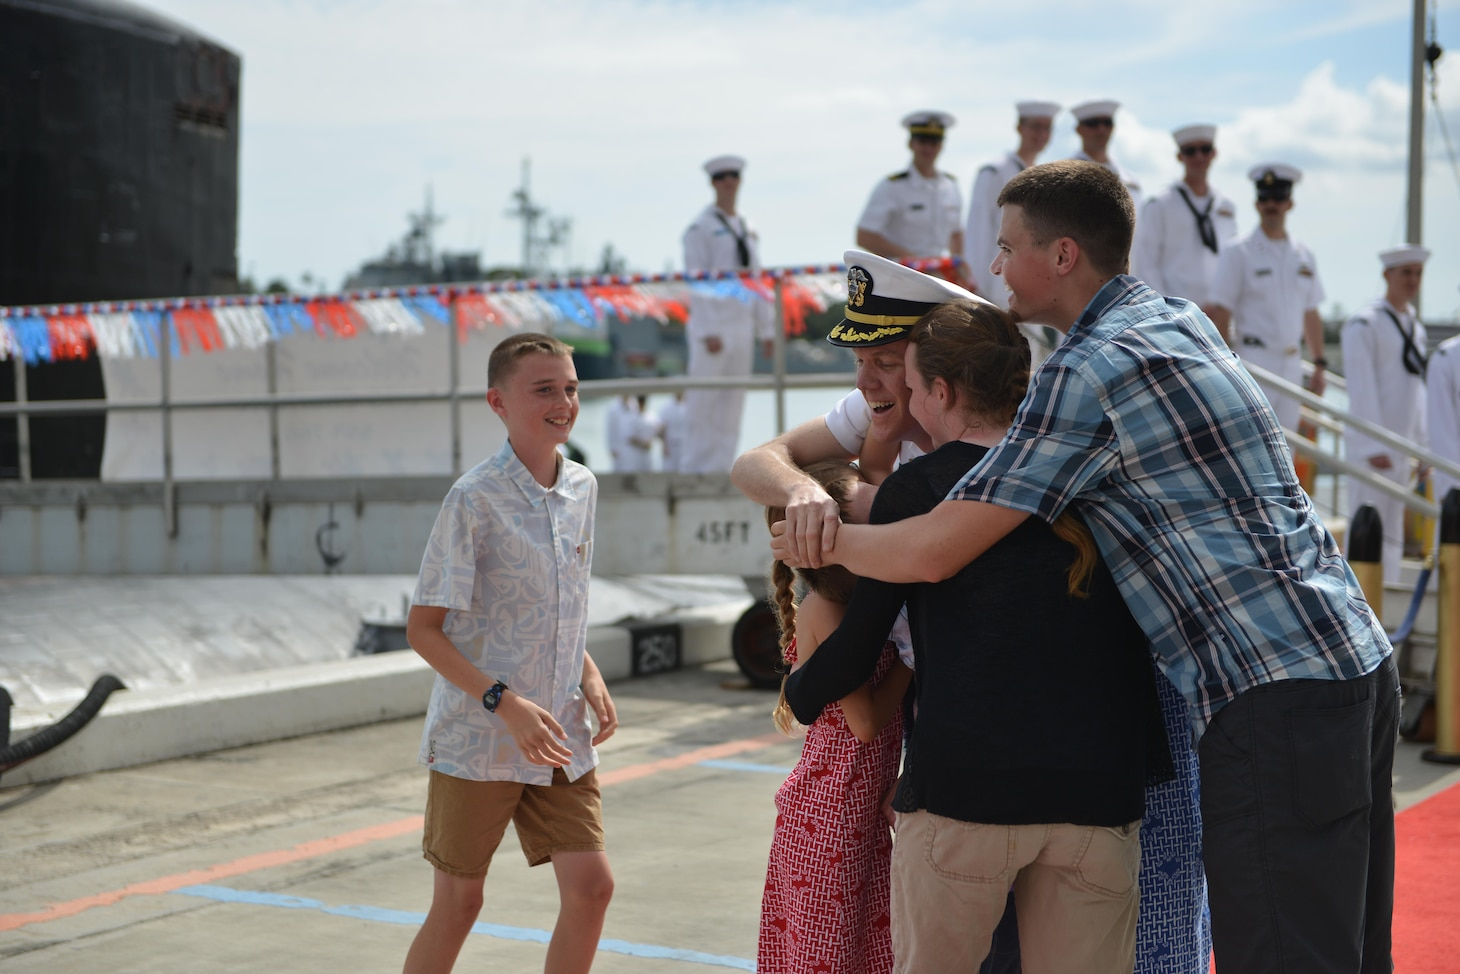 PEARL HARBOR Hawaii (May 13, 2016) Commander Andrew T. Miller, from Hilton Head, S.C., commanding officer of the Los Angeles-class fast-attack submarine USS Charlotte (SSN 766), is greeted by his children upon returning to Joint Base Pearl Harbor-Hickam following a six-month deployment to the Western Pacific. (U.S. Navy photo by Mass Communication Specialist 2nd Class Michael H. Lee/Released)